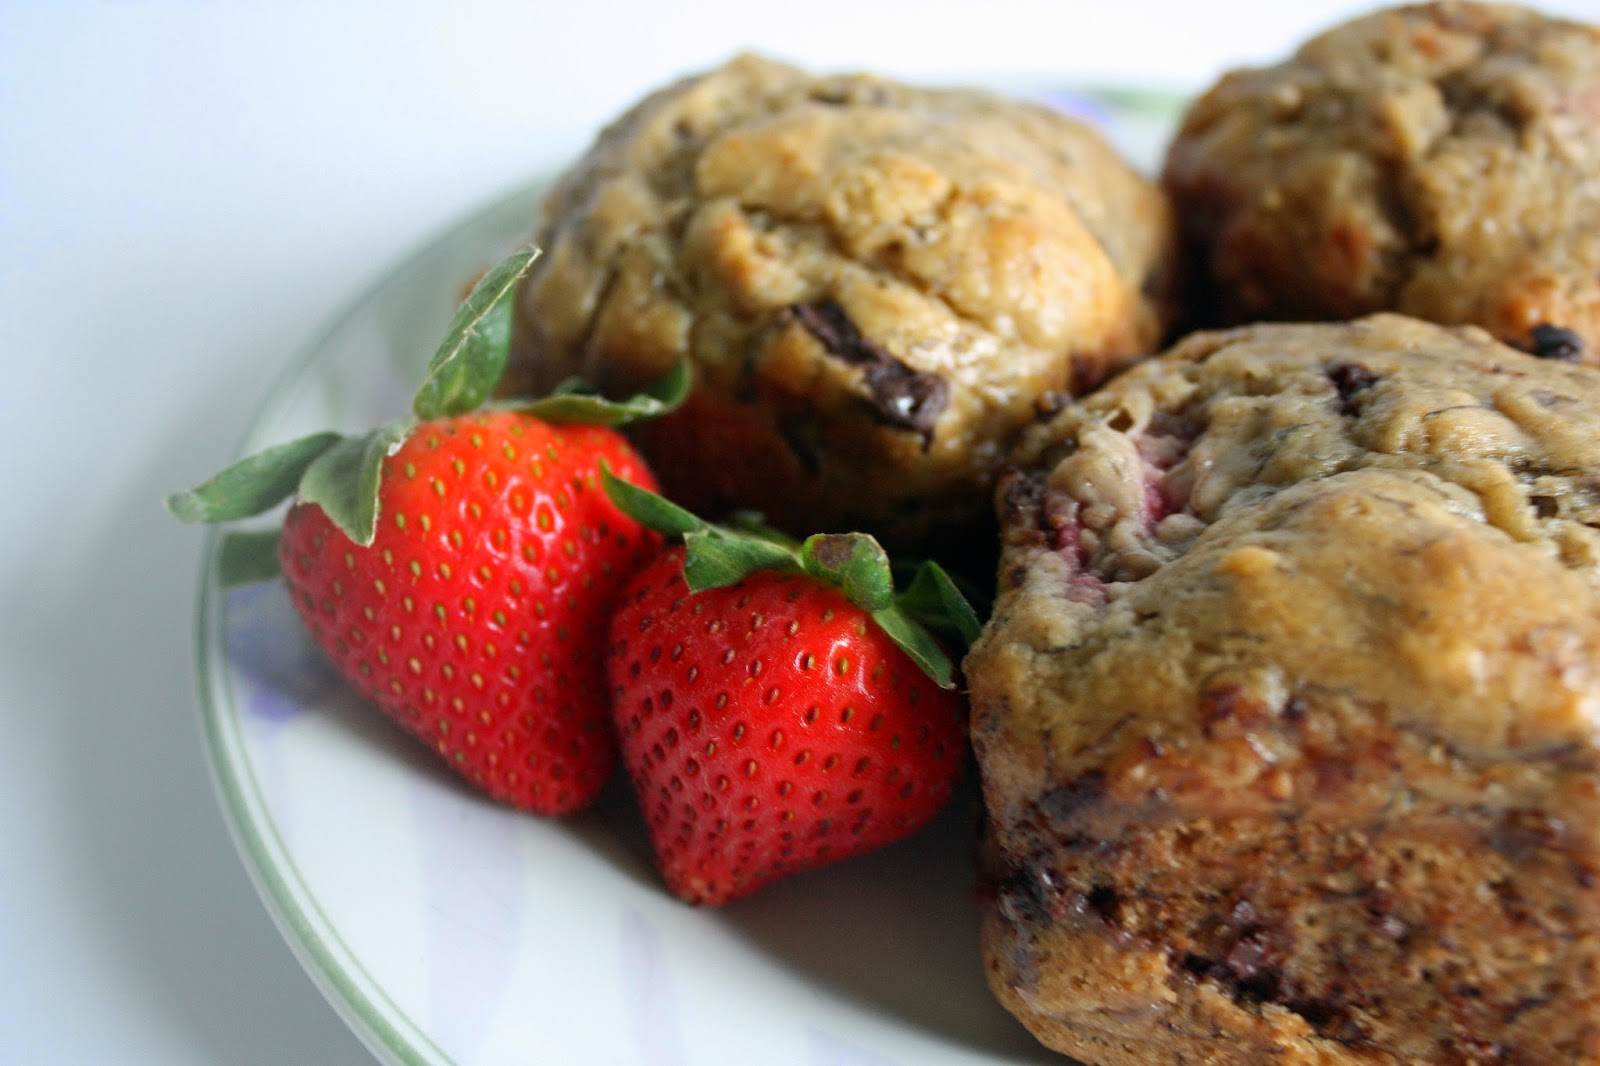 dark chocolate chunk strawberry banana bread muffins with strawberries as garnish so pretty